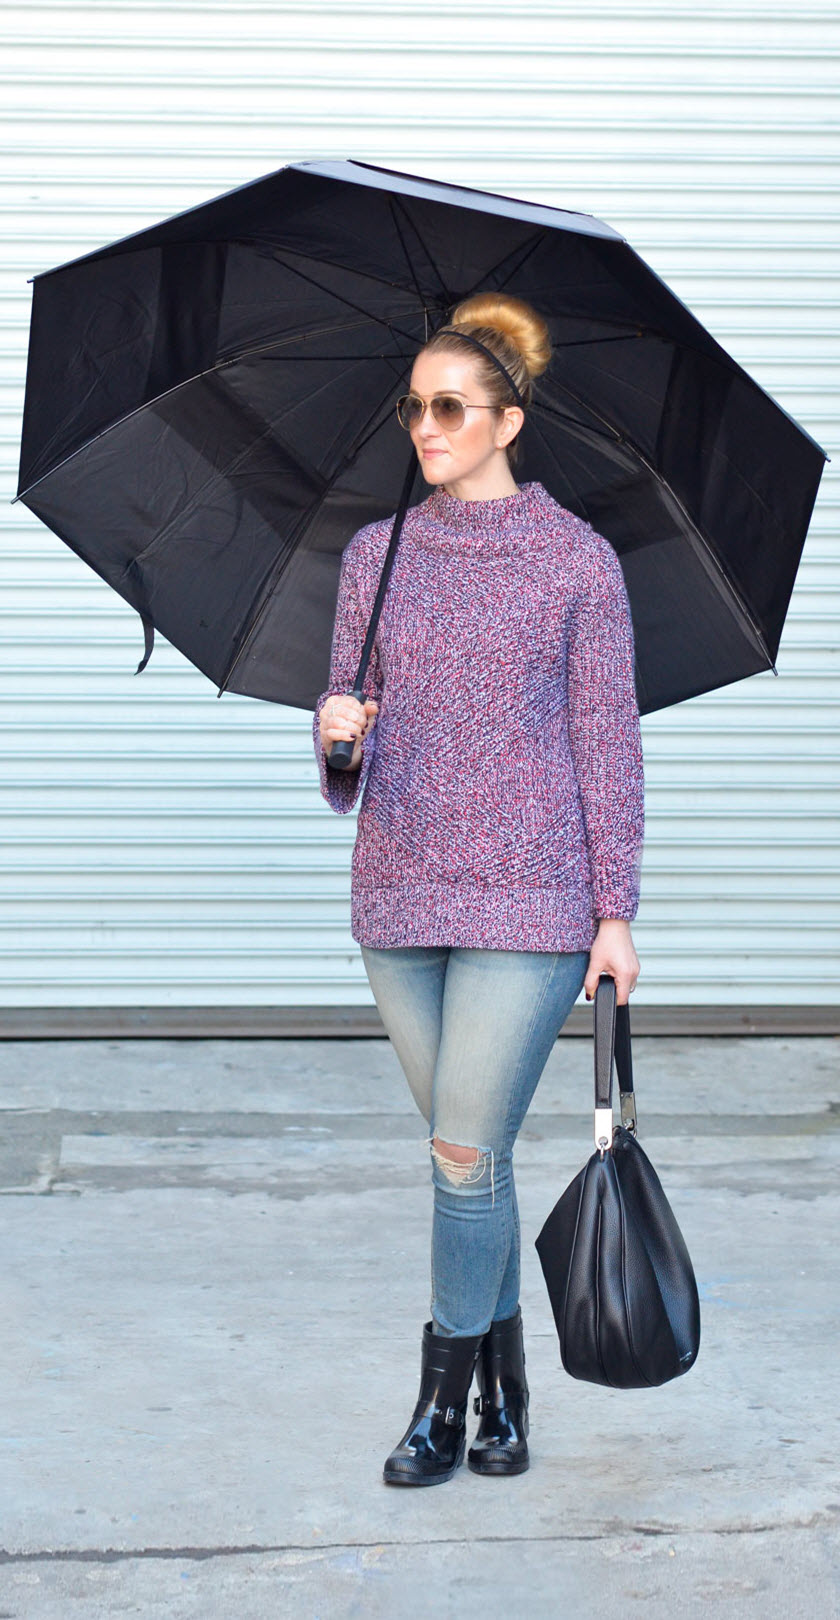 Women's Rainy Day Outfit with short rain boots + turtleneck sweater